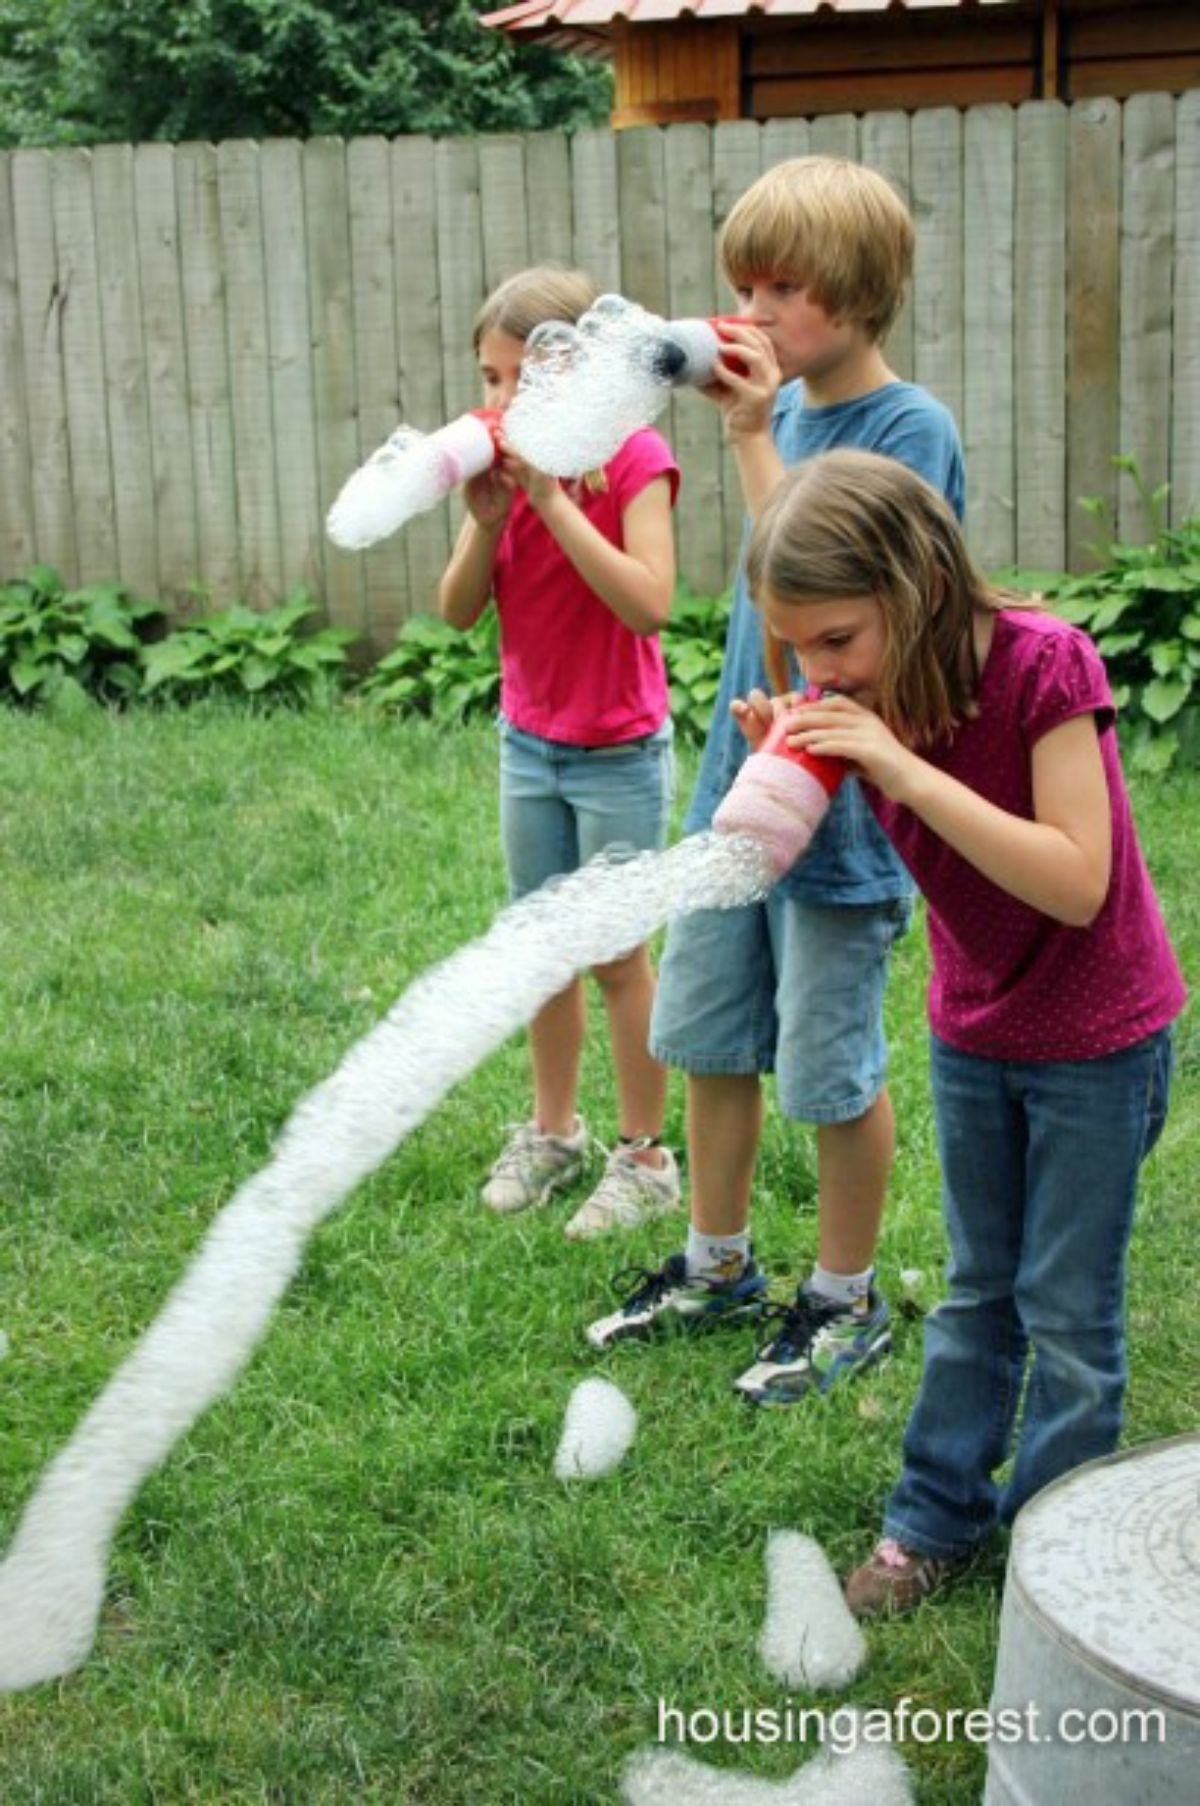 in a garden are 3 children holding plastic bottles to their mouths and blowing bubbles out of them